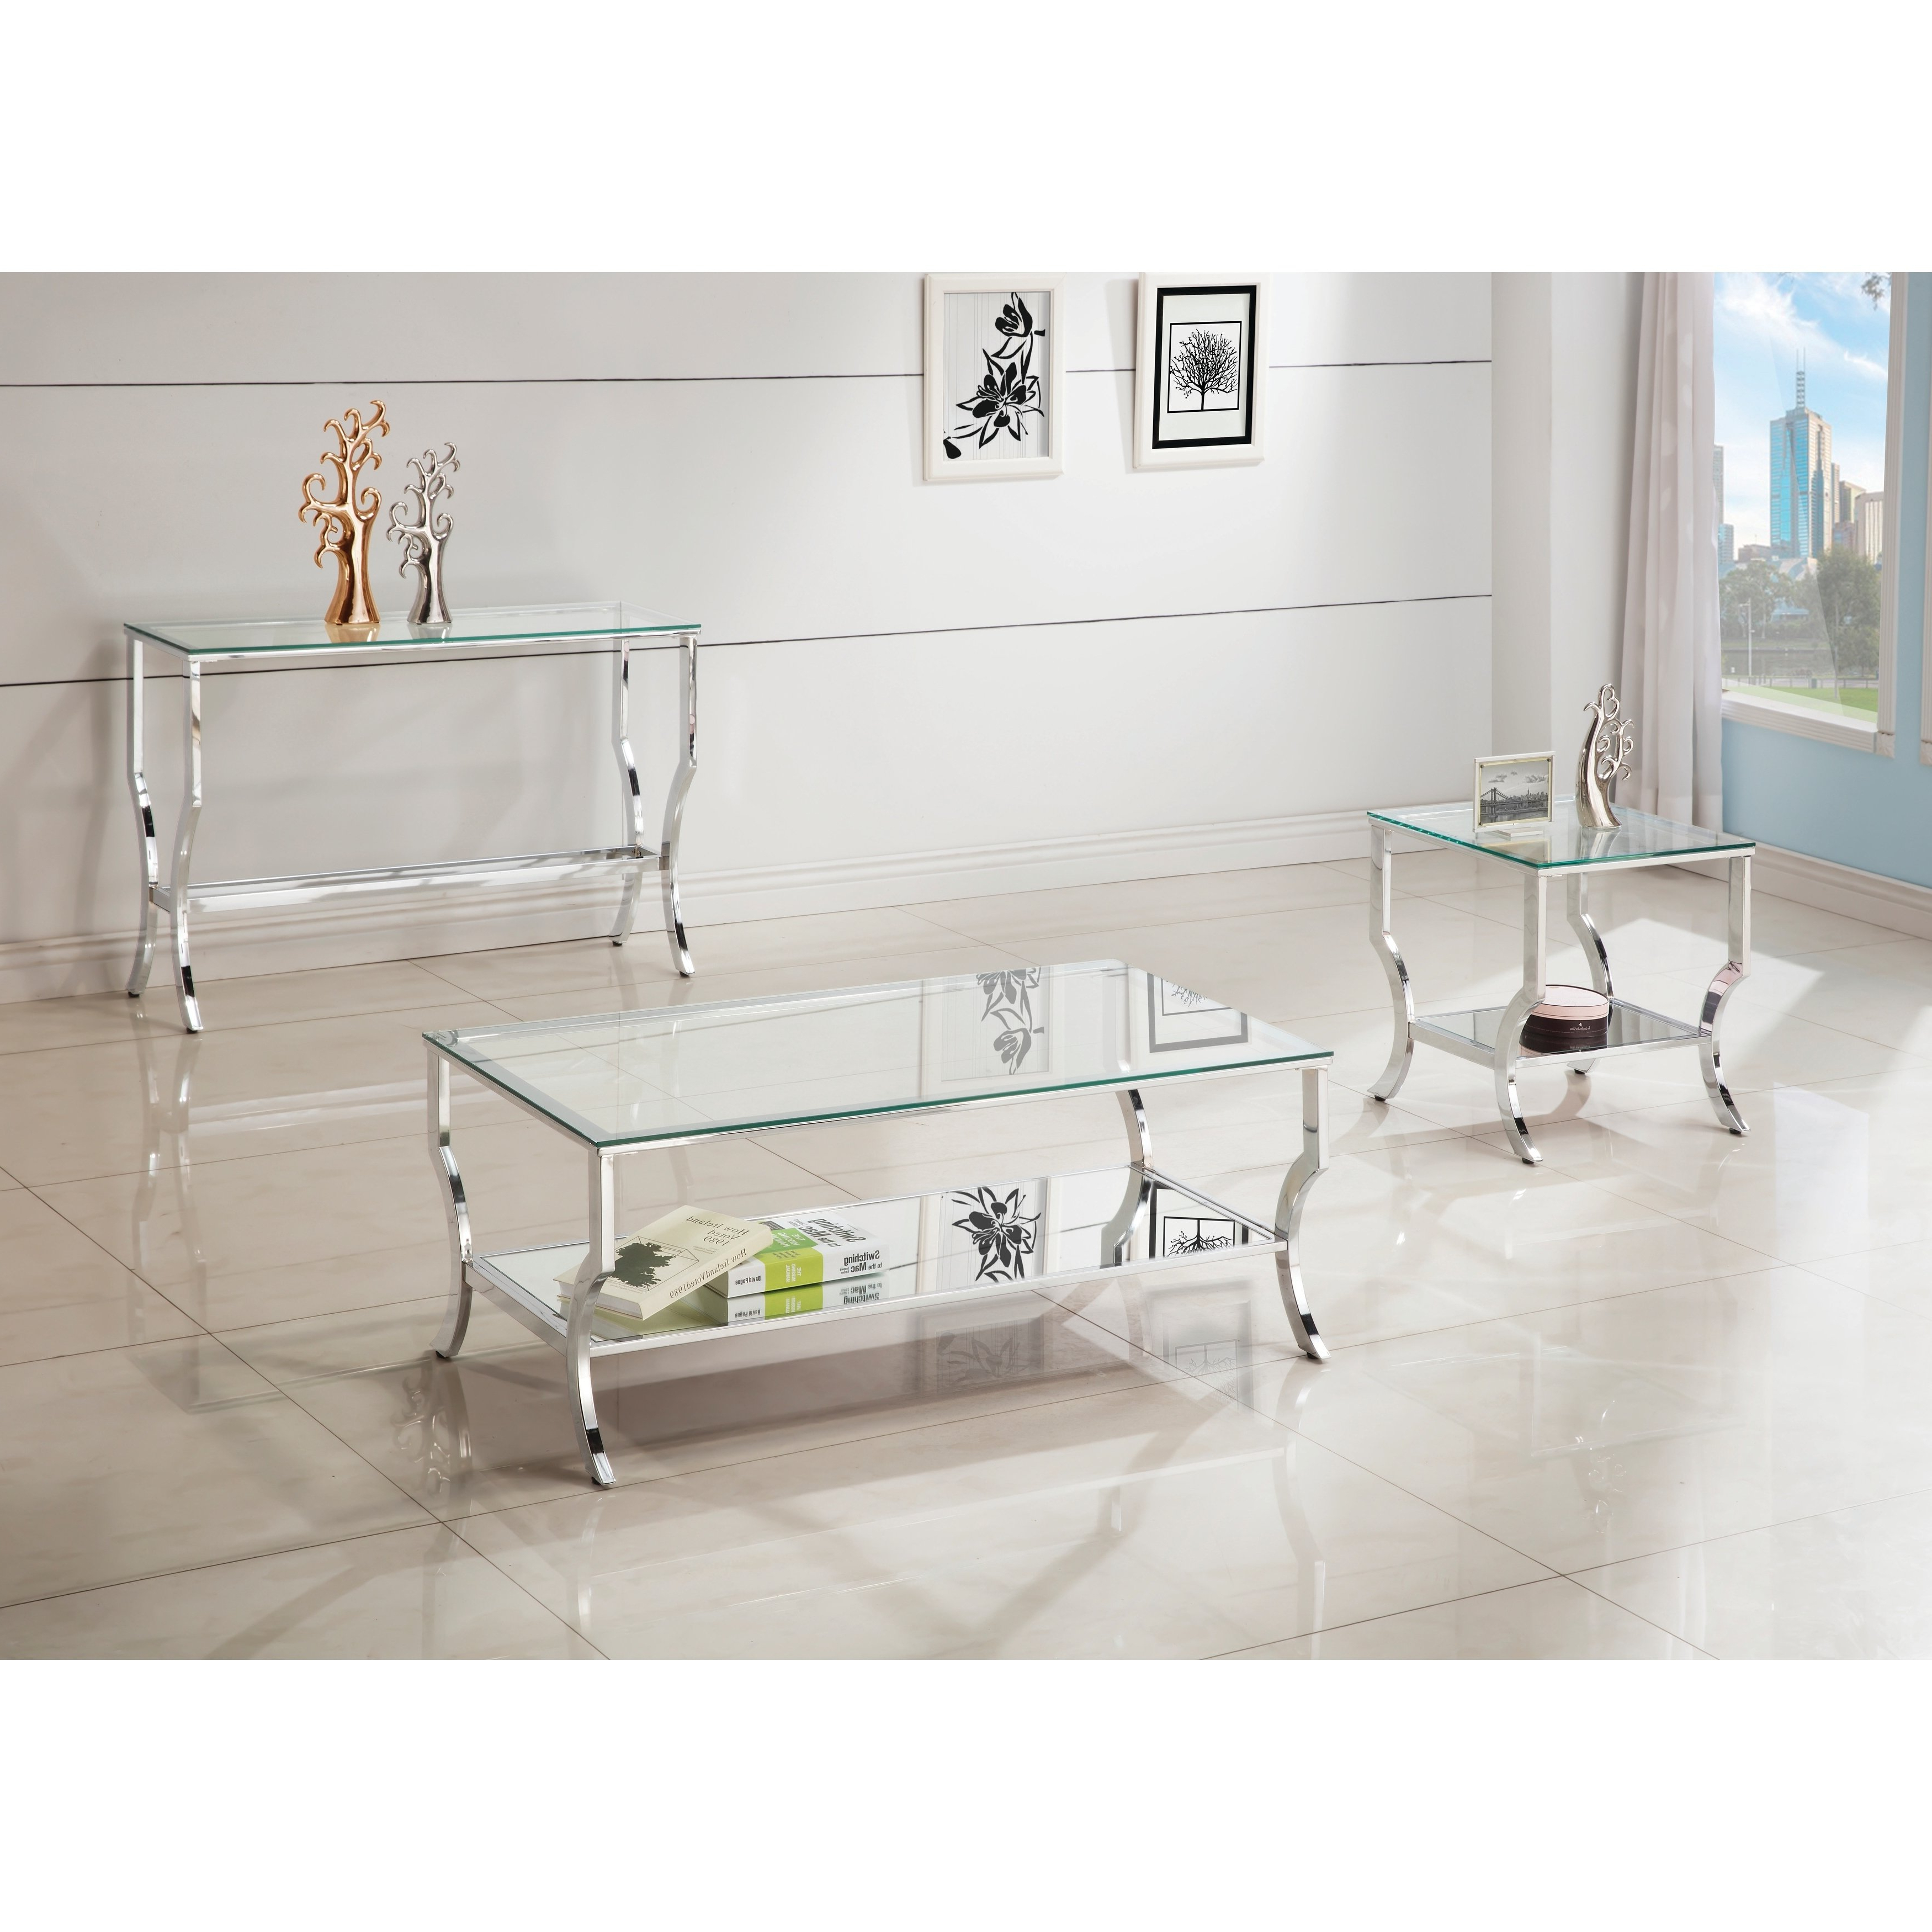 Contemporary Chrome Glass Top And Mirror Shelf Coffee Table In Recent Thalberg Contemporary Chrome Coffee Tables By Foa (View 3 of 20)